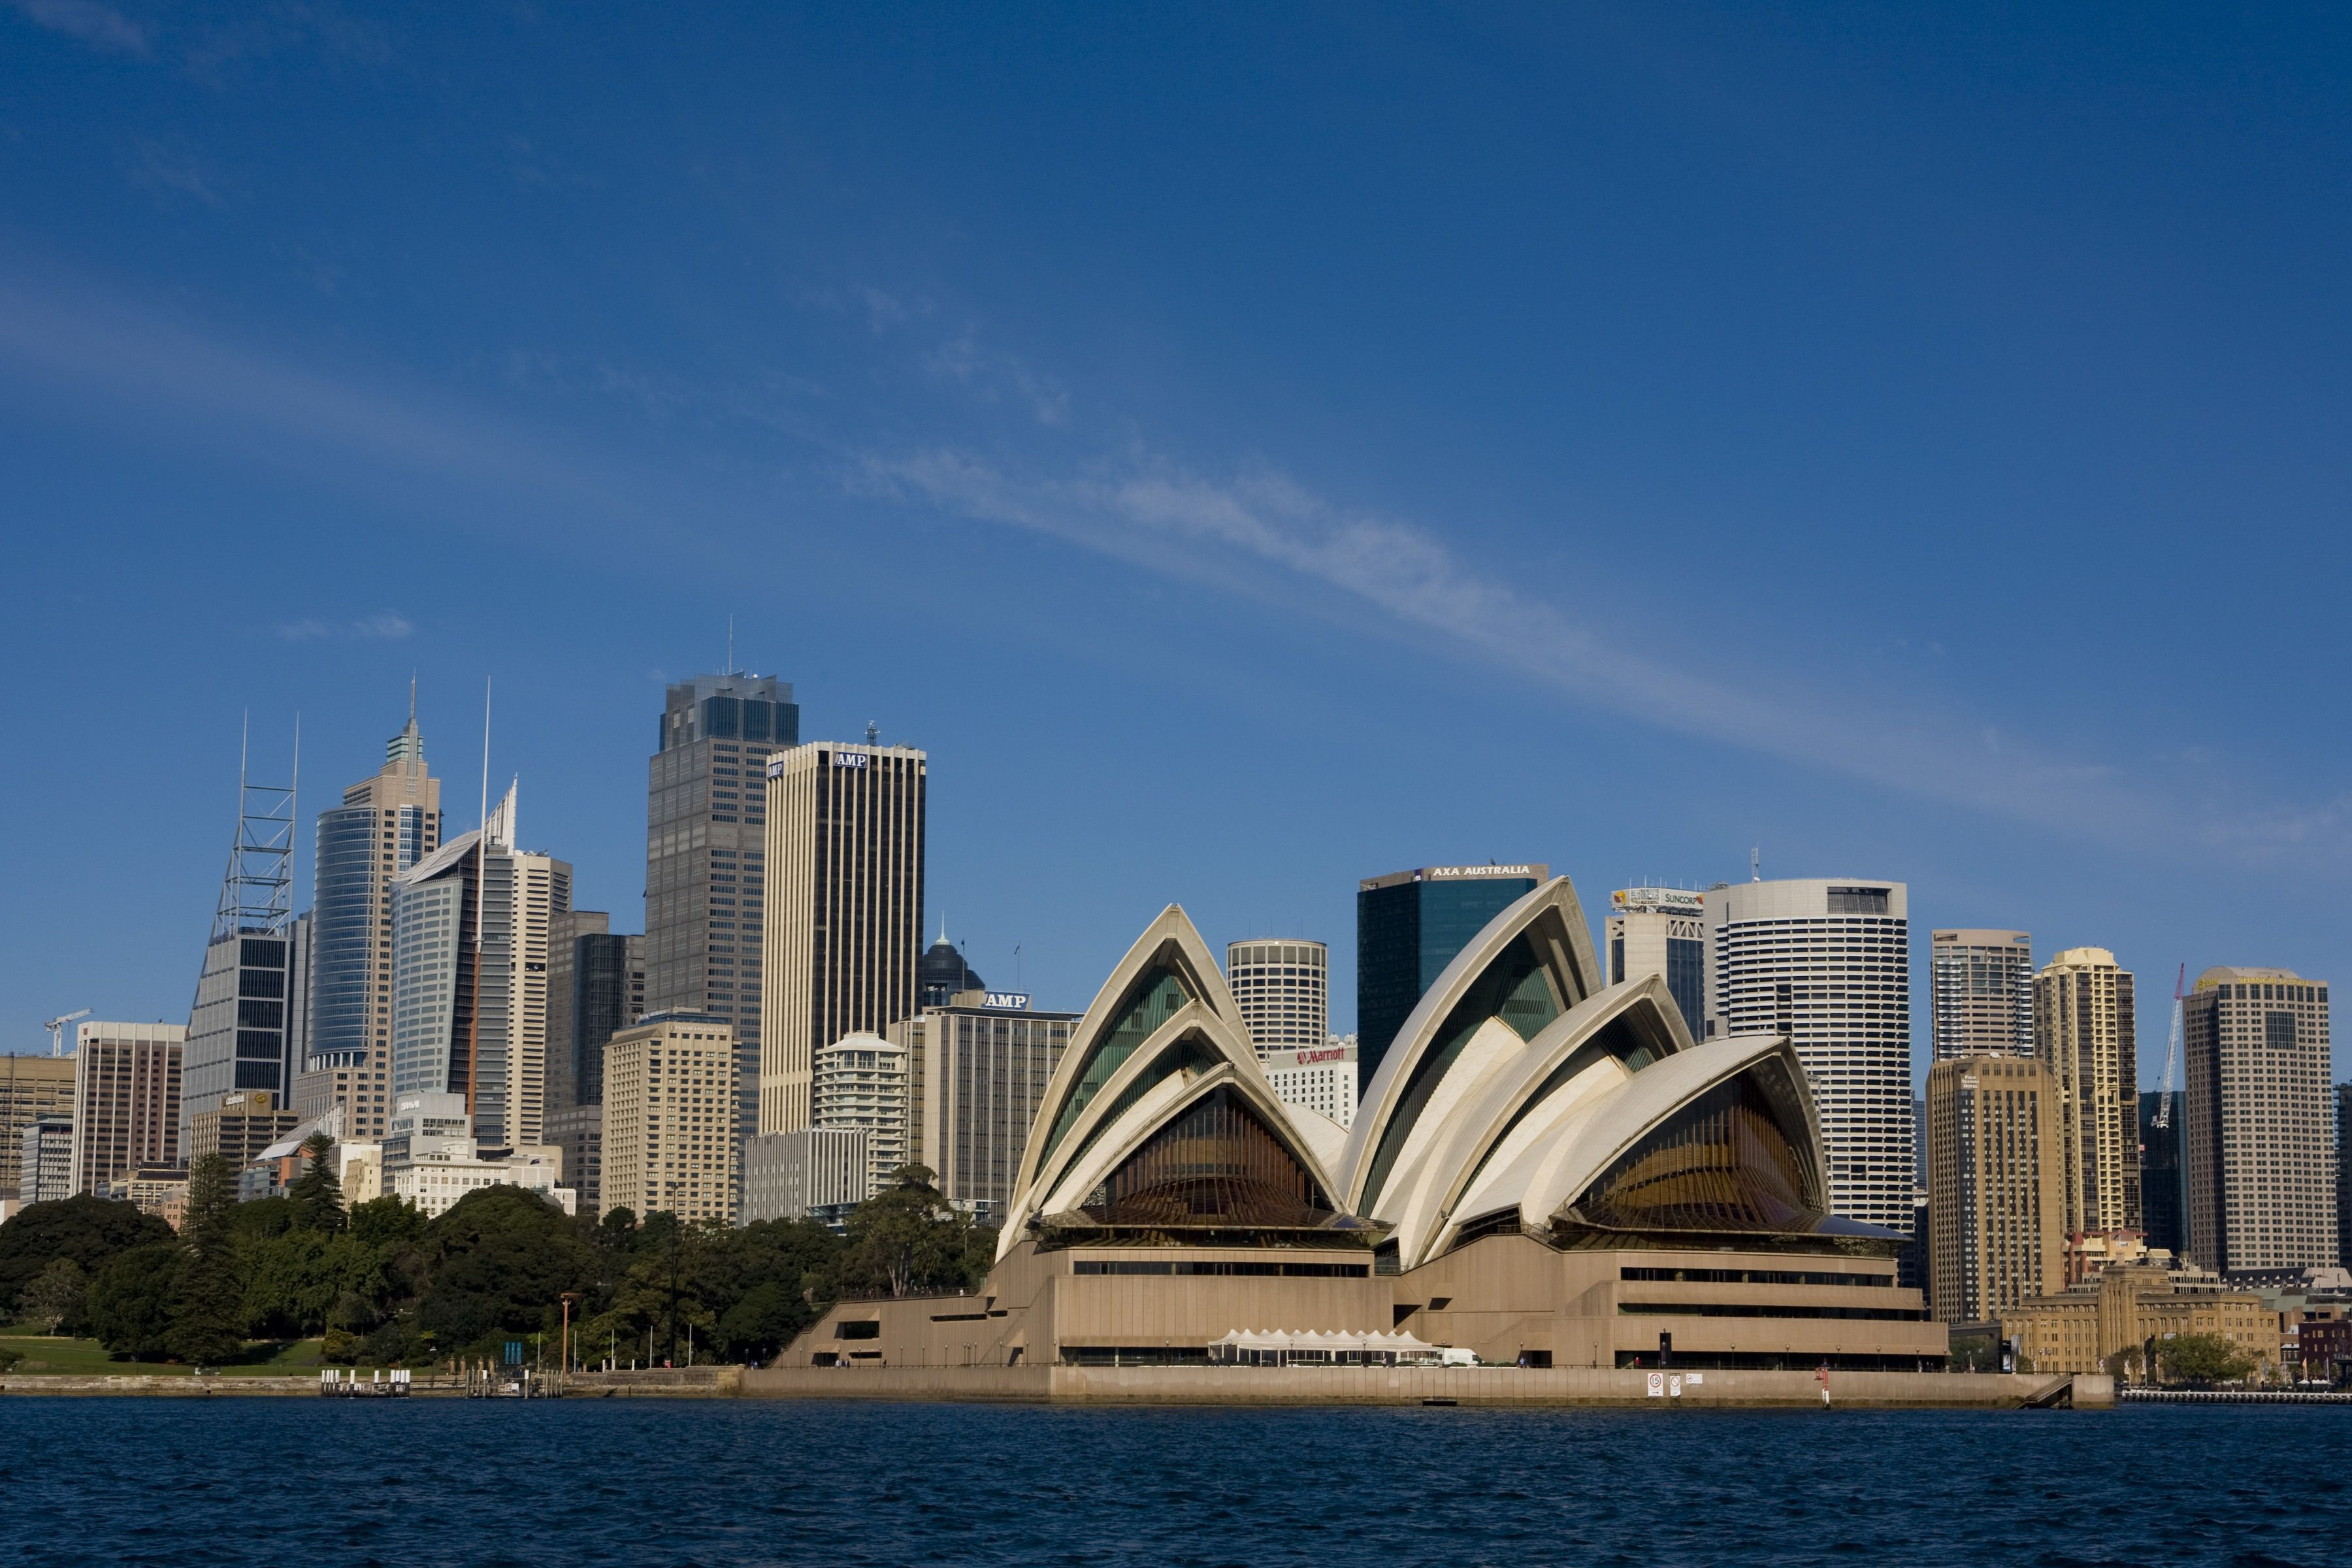 The Location of the Sydney Opera House